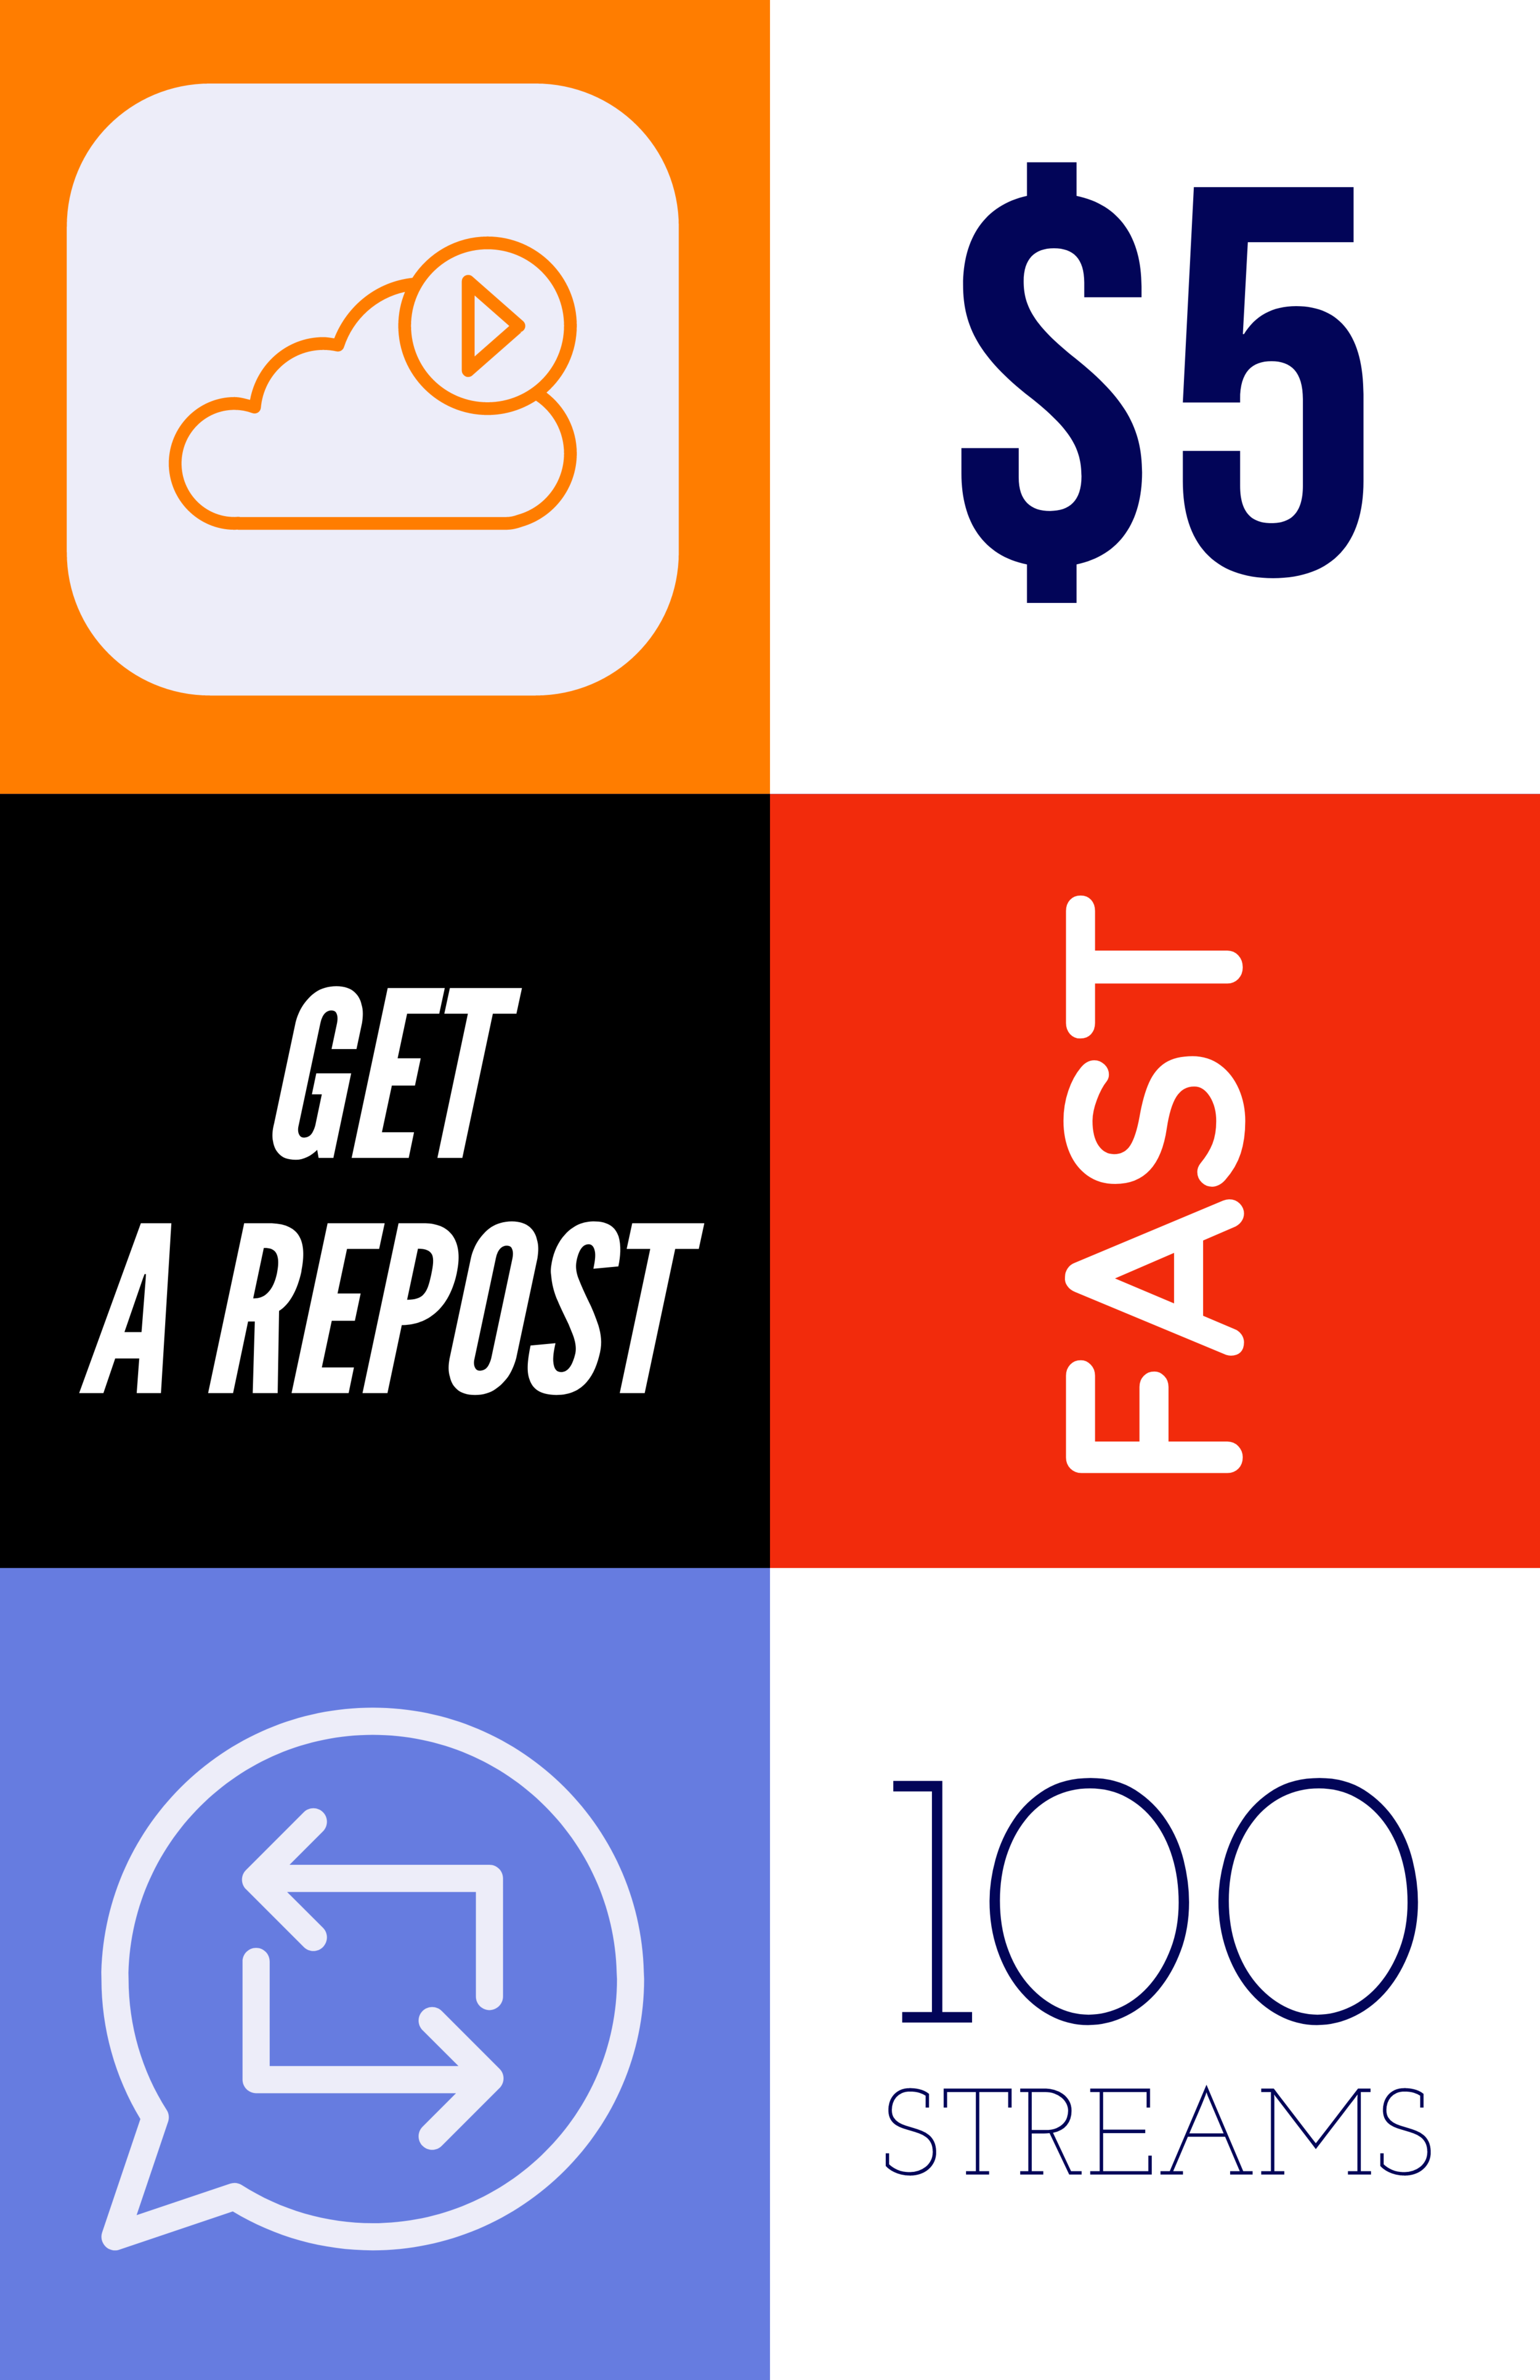 SoundCloud Repost - Best Music Promotion Services for Up and Coming Artists